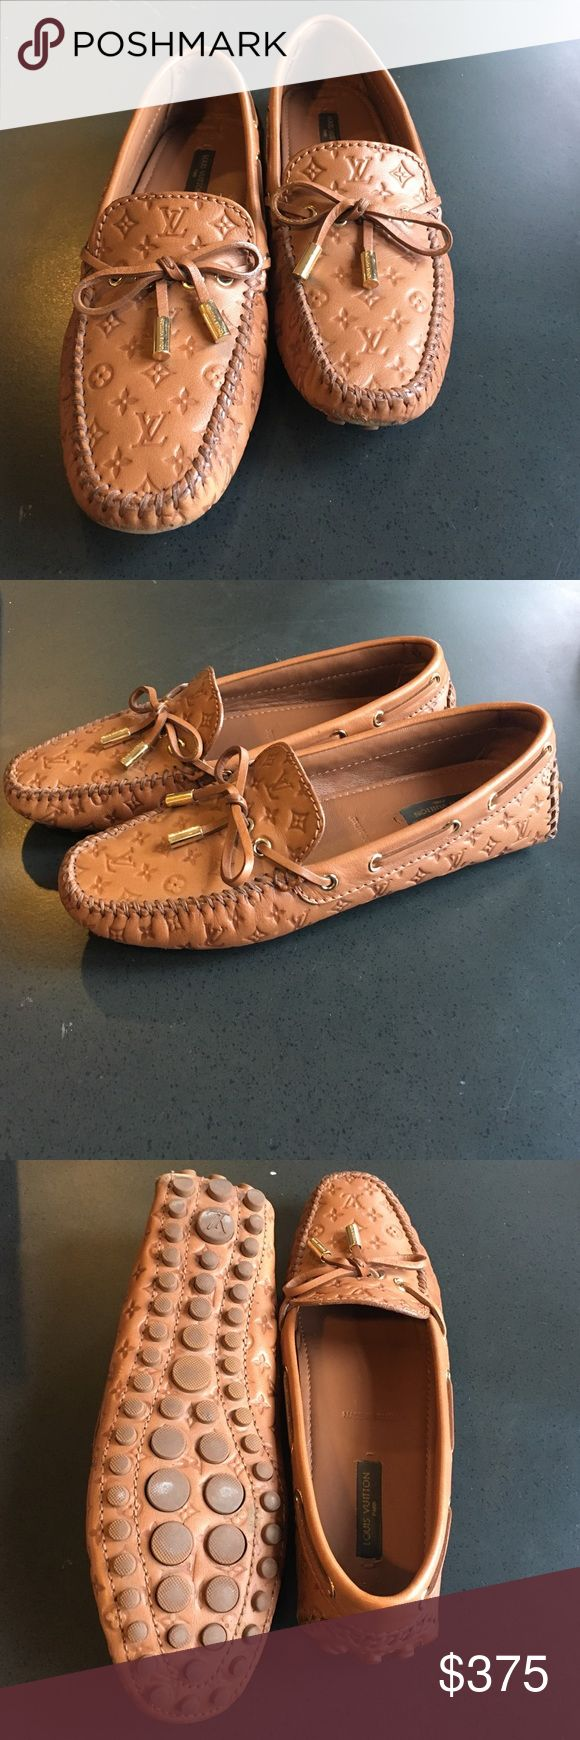 Louis Vuitton Flat Gloria Loafers Very lightly used Louis Vuitton Gloria Flat Loafers (cognac) - embossed calf leather with rubber outsole with nubs. There are only very slight small strains around the shoes, but nothing major. These are in amazing condition! Louis Vuitton Shoes Flats & Loafers